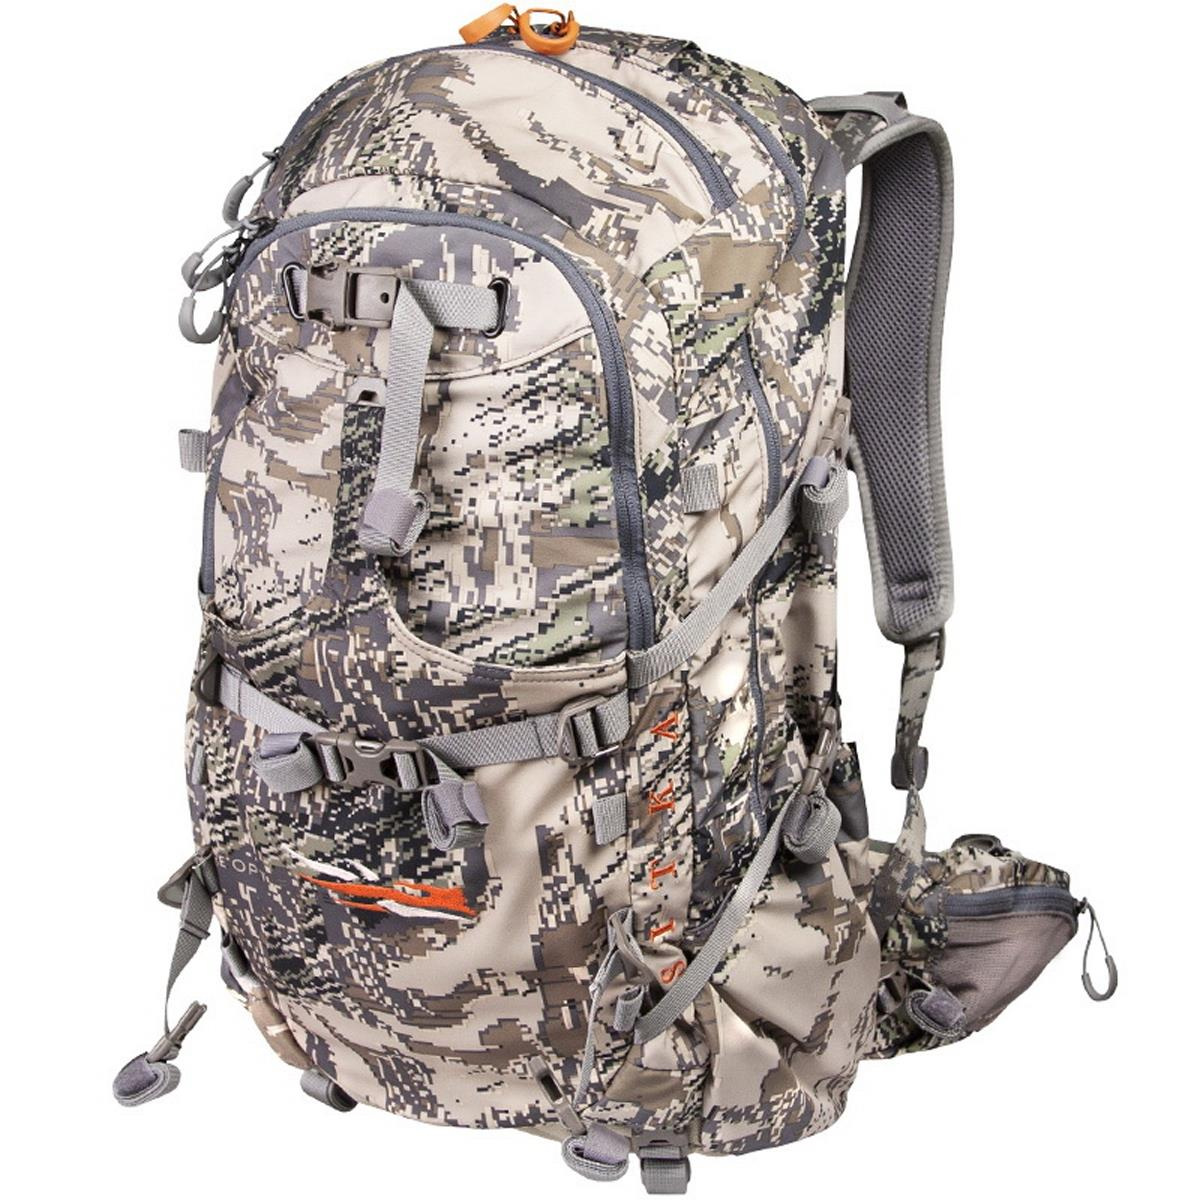 Backpack Flash 20 New Color. OPTIFADE Open Country R. Osfa Sitka Supplier